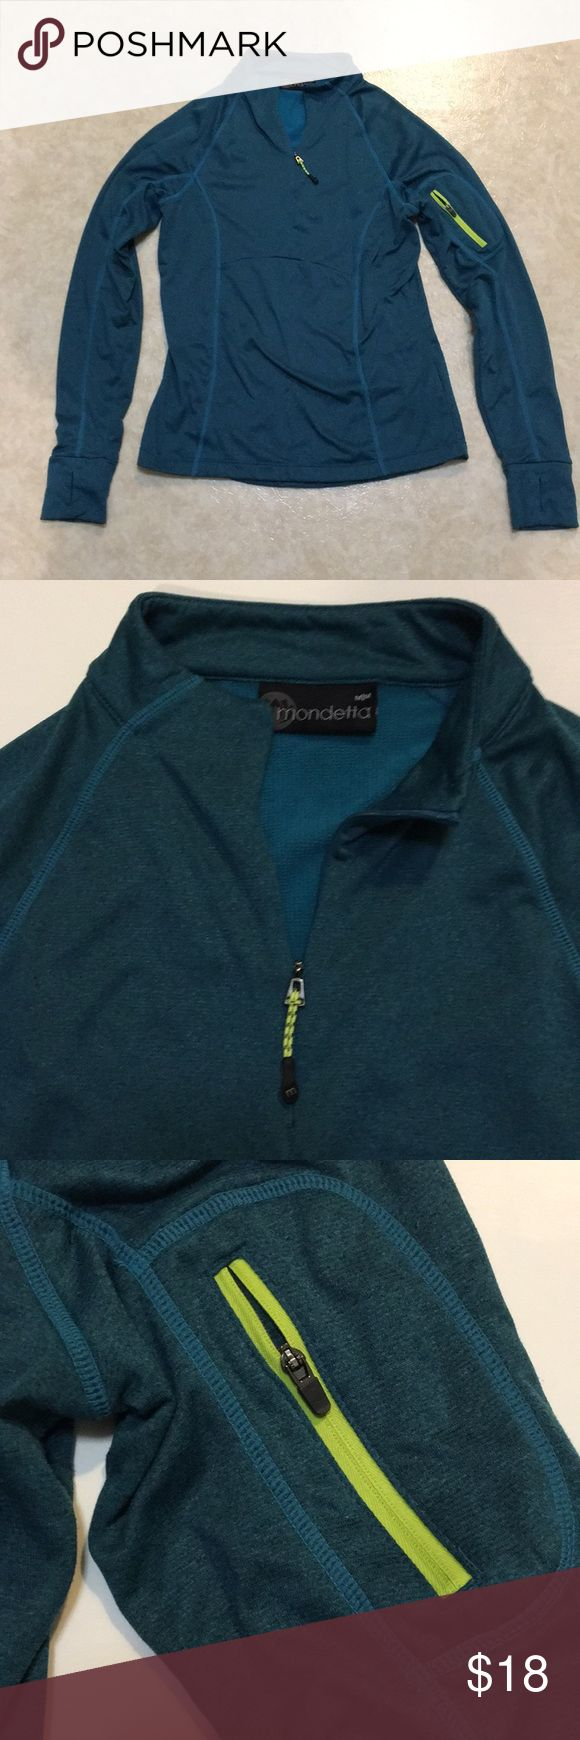 Mondetta pull over Mondetta women's 1/4 zip activewear pullover.  Gently used with normal wear but no rips or stains. Very comfy with a soft inner lining. 1/4/18 Mondetta Tops Sweatshirts & Hoodies